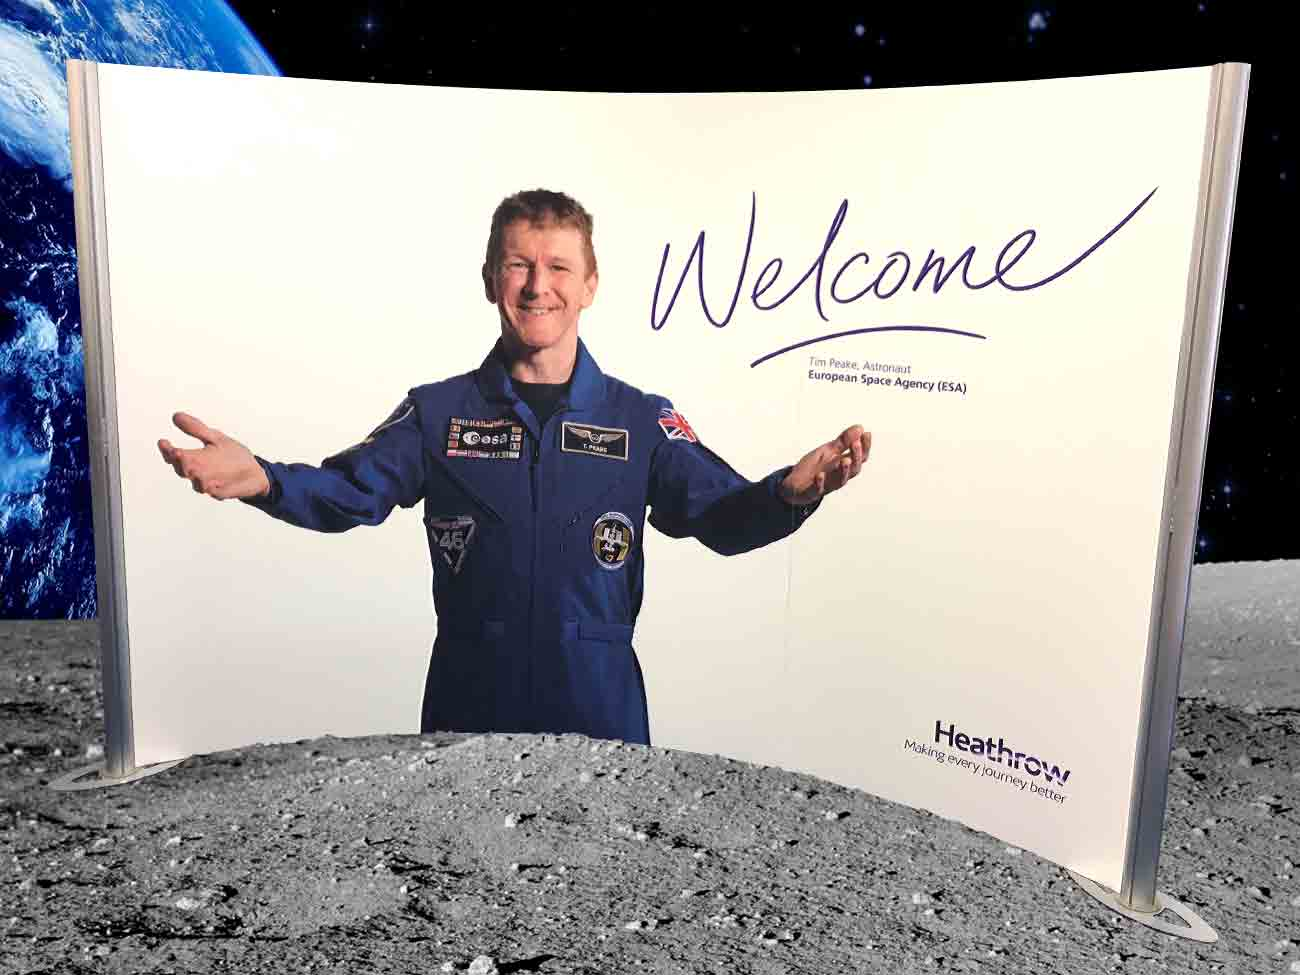 Heathow Welcomes Tim Peake